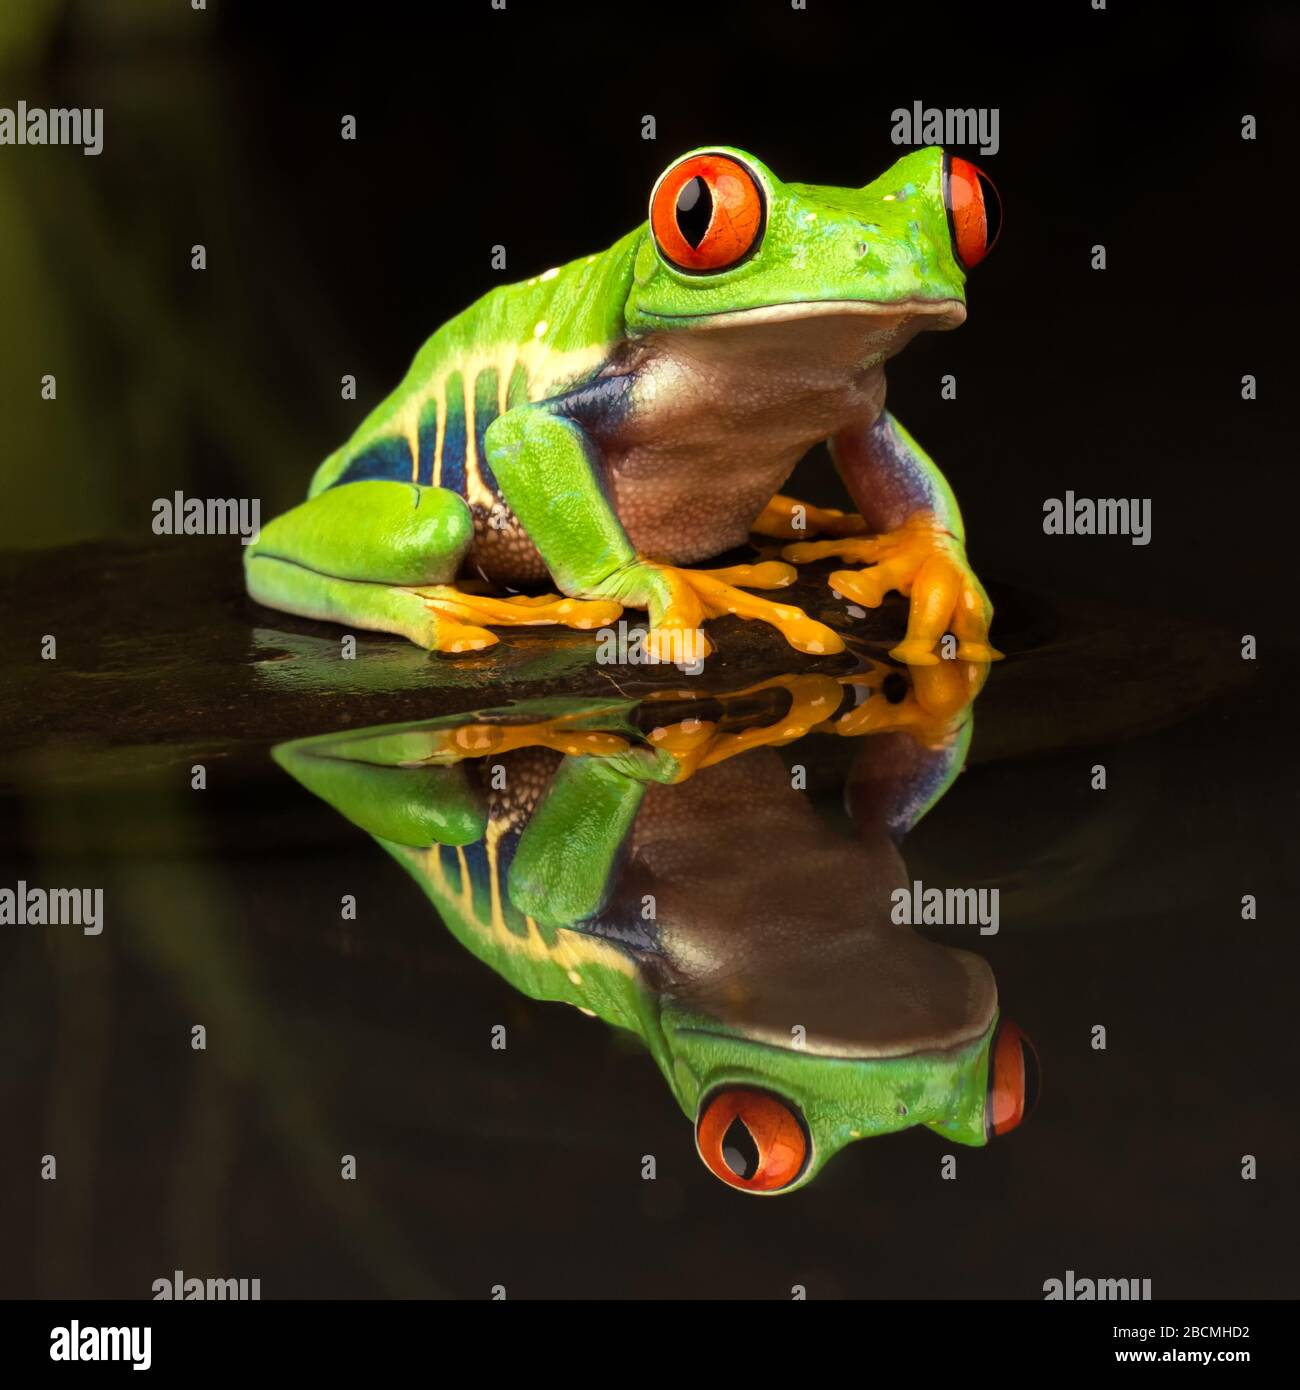 Central / South American Red Eyed Tree Frog (Agalychnis callidryas) sitting on a stone in a still pond with reflection Stock Photo